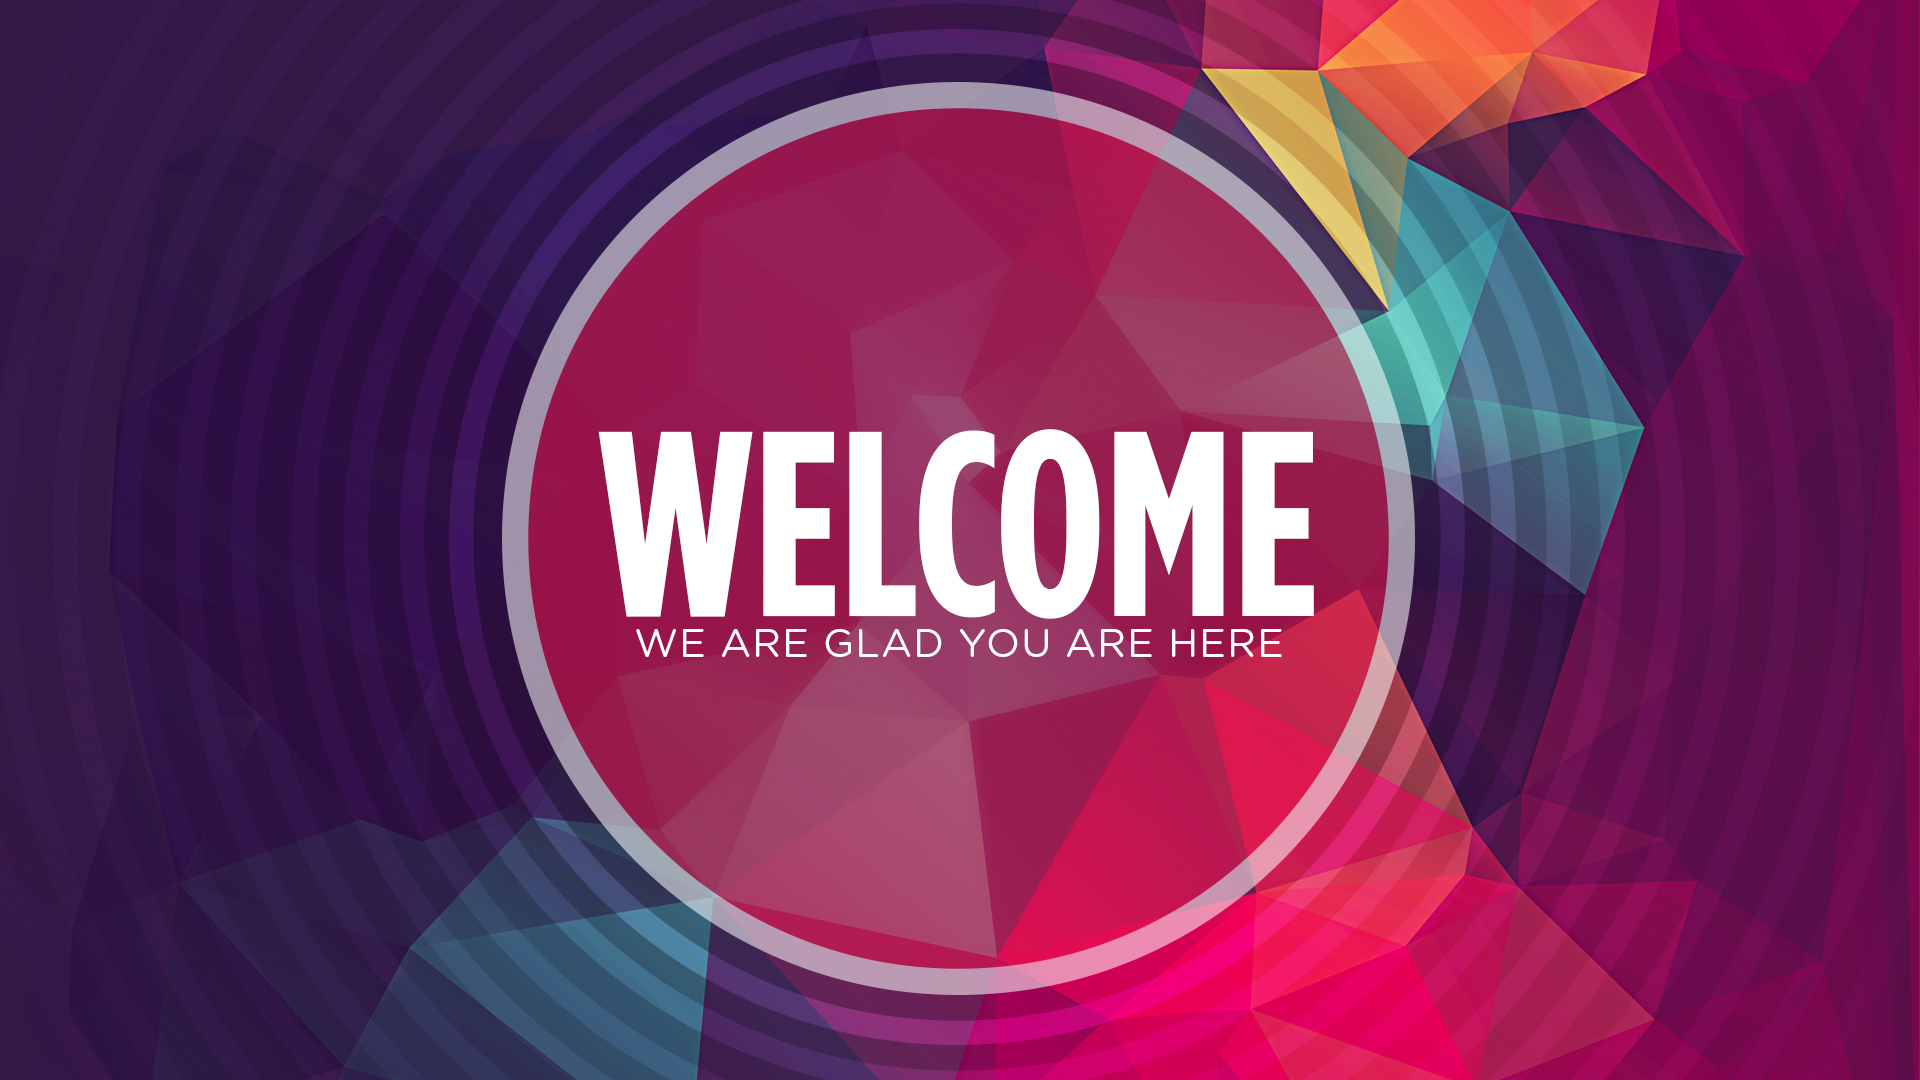 welcome_circle-Wide 16x9.jpg